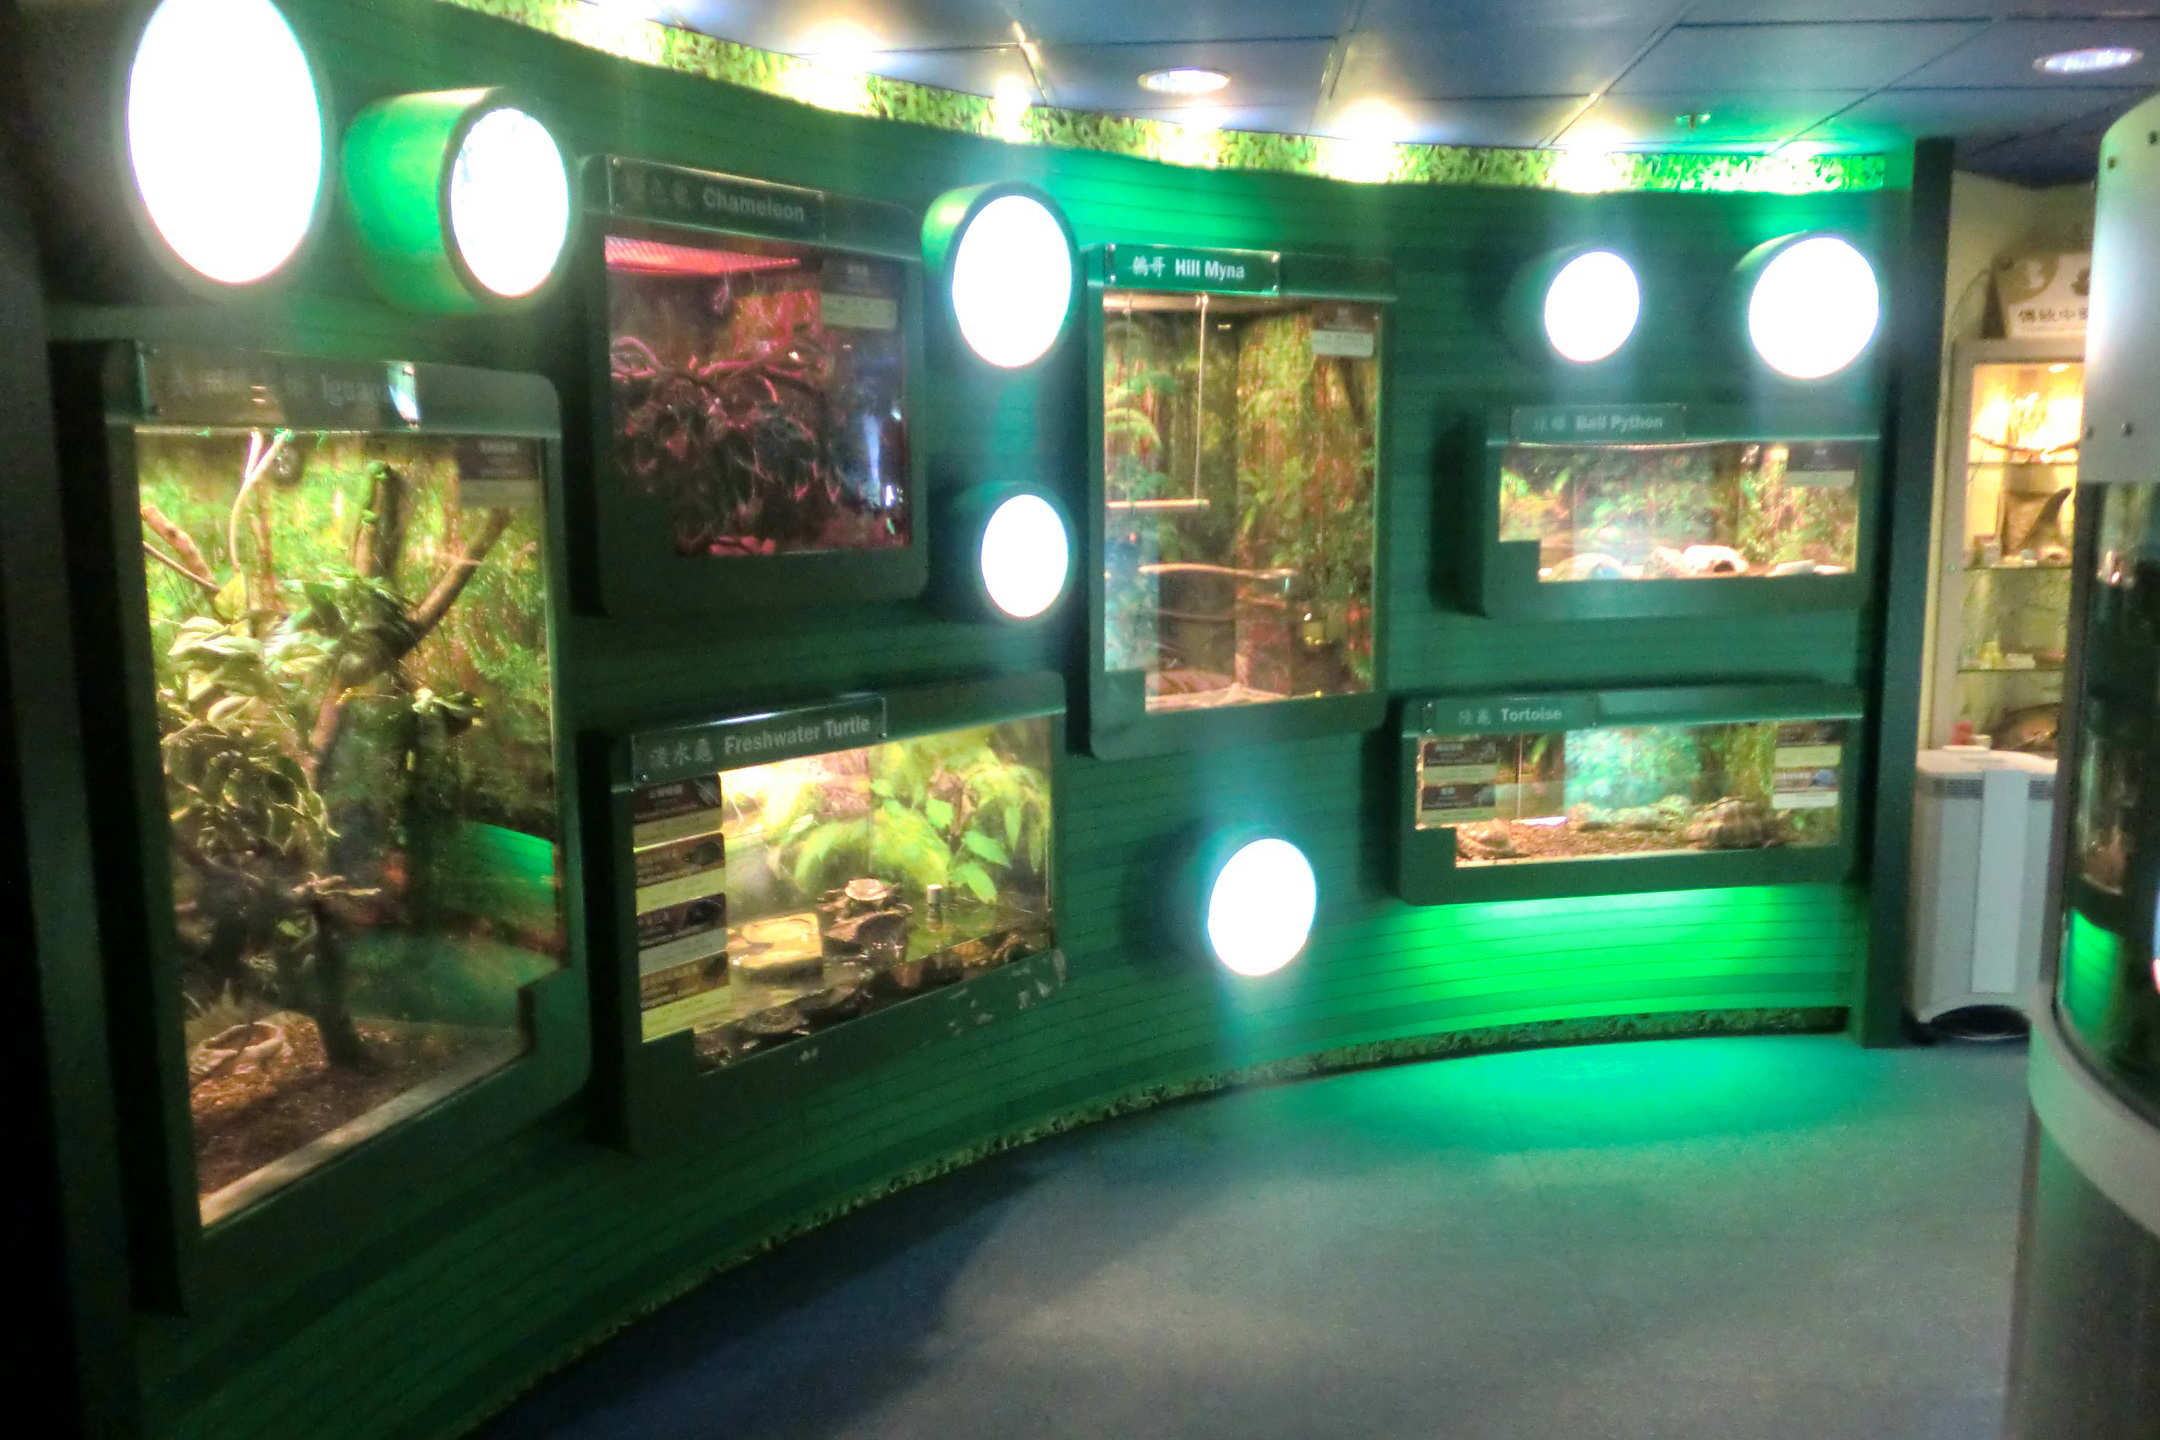 Guided Visit to Endangered Species Resource Centre ESRC